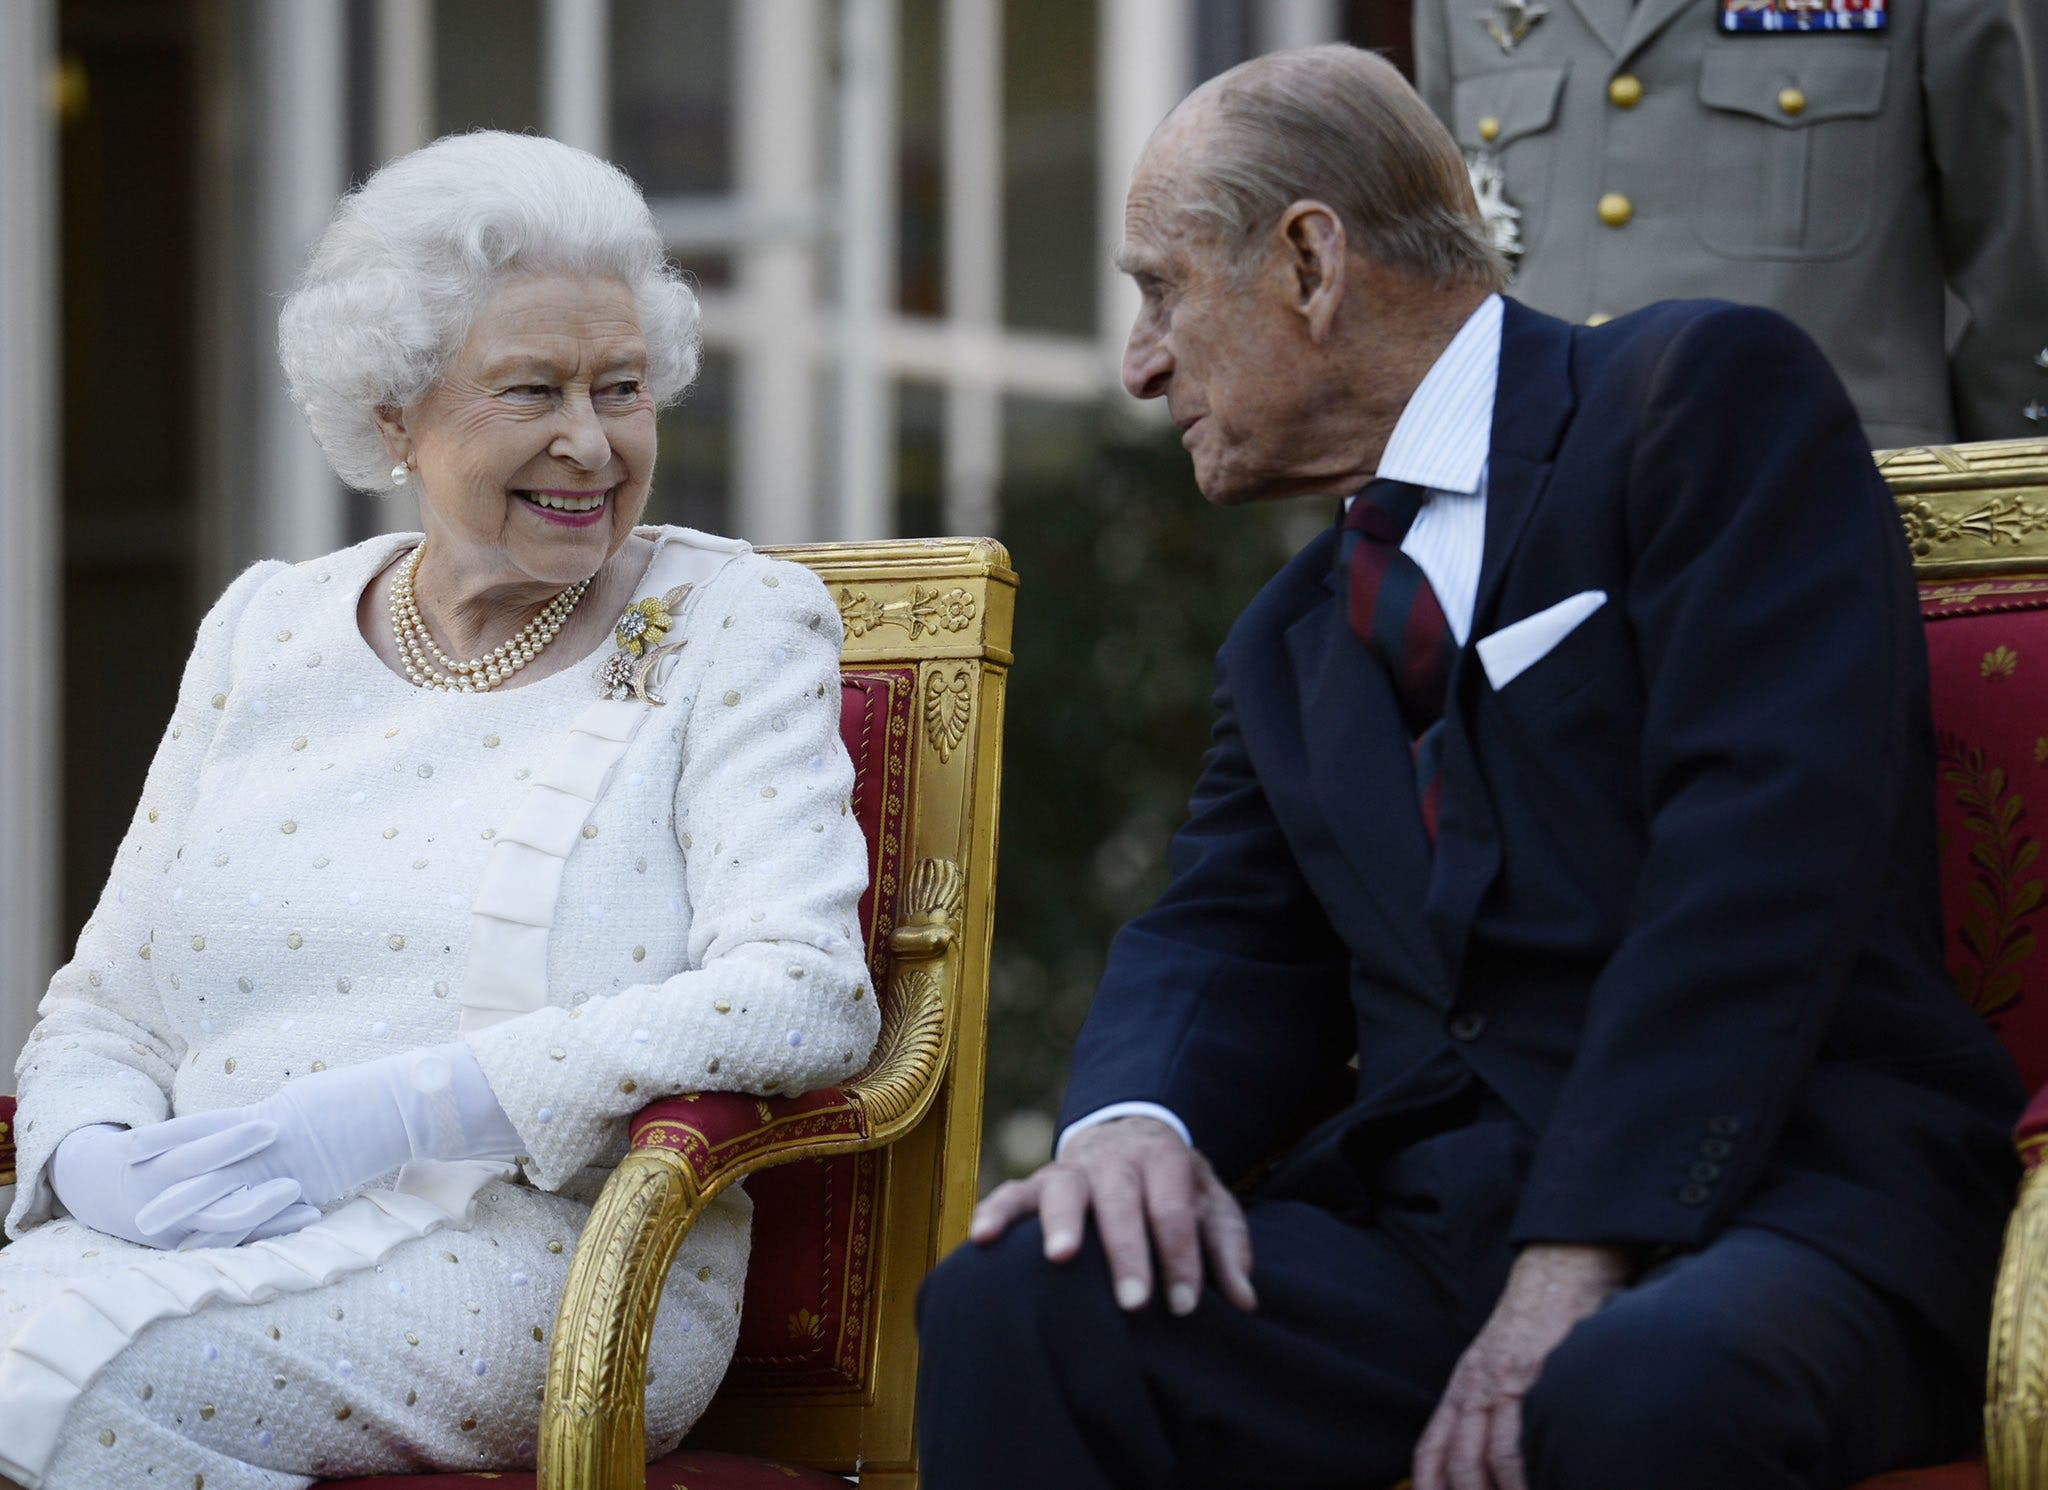 Prince Philip and Queen smiling